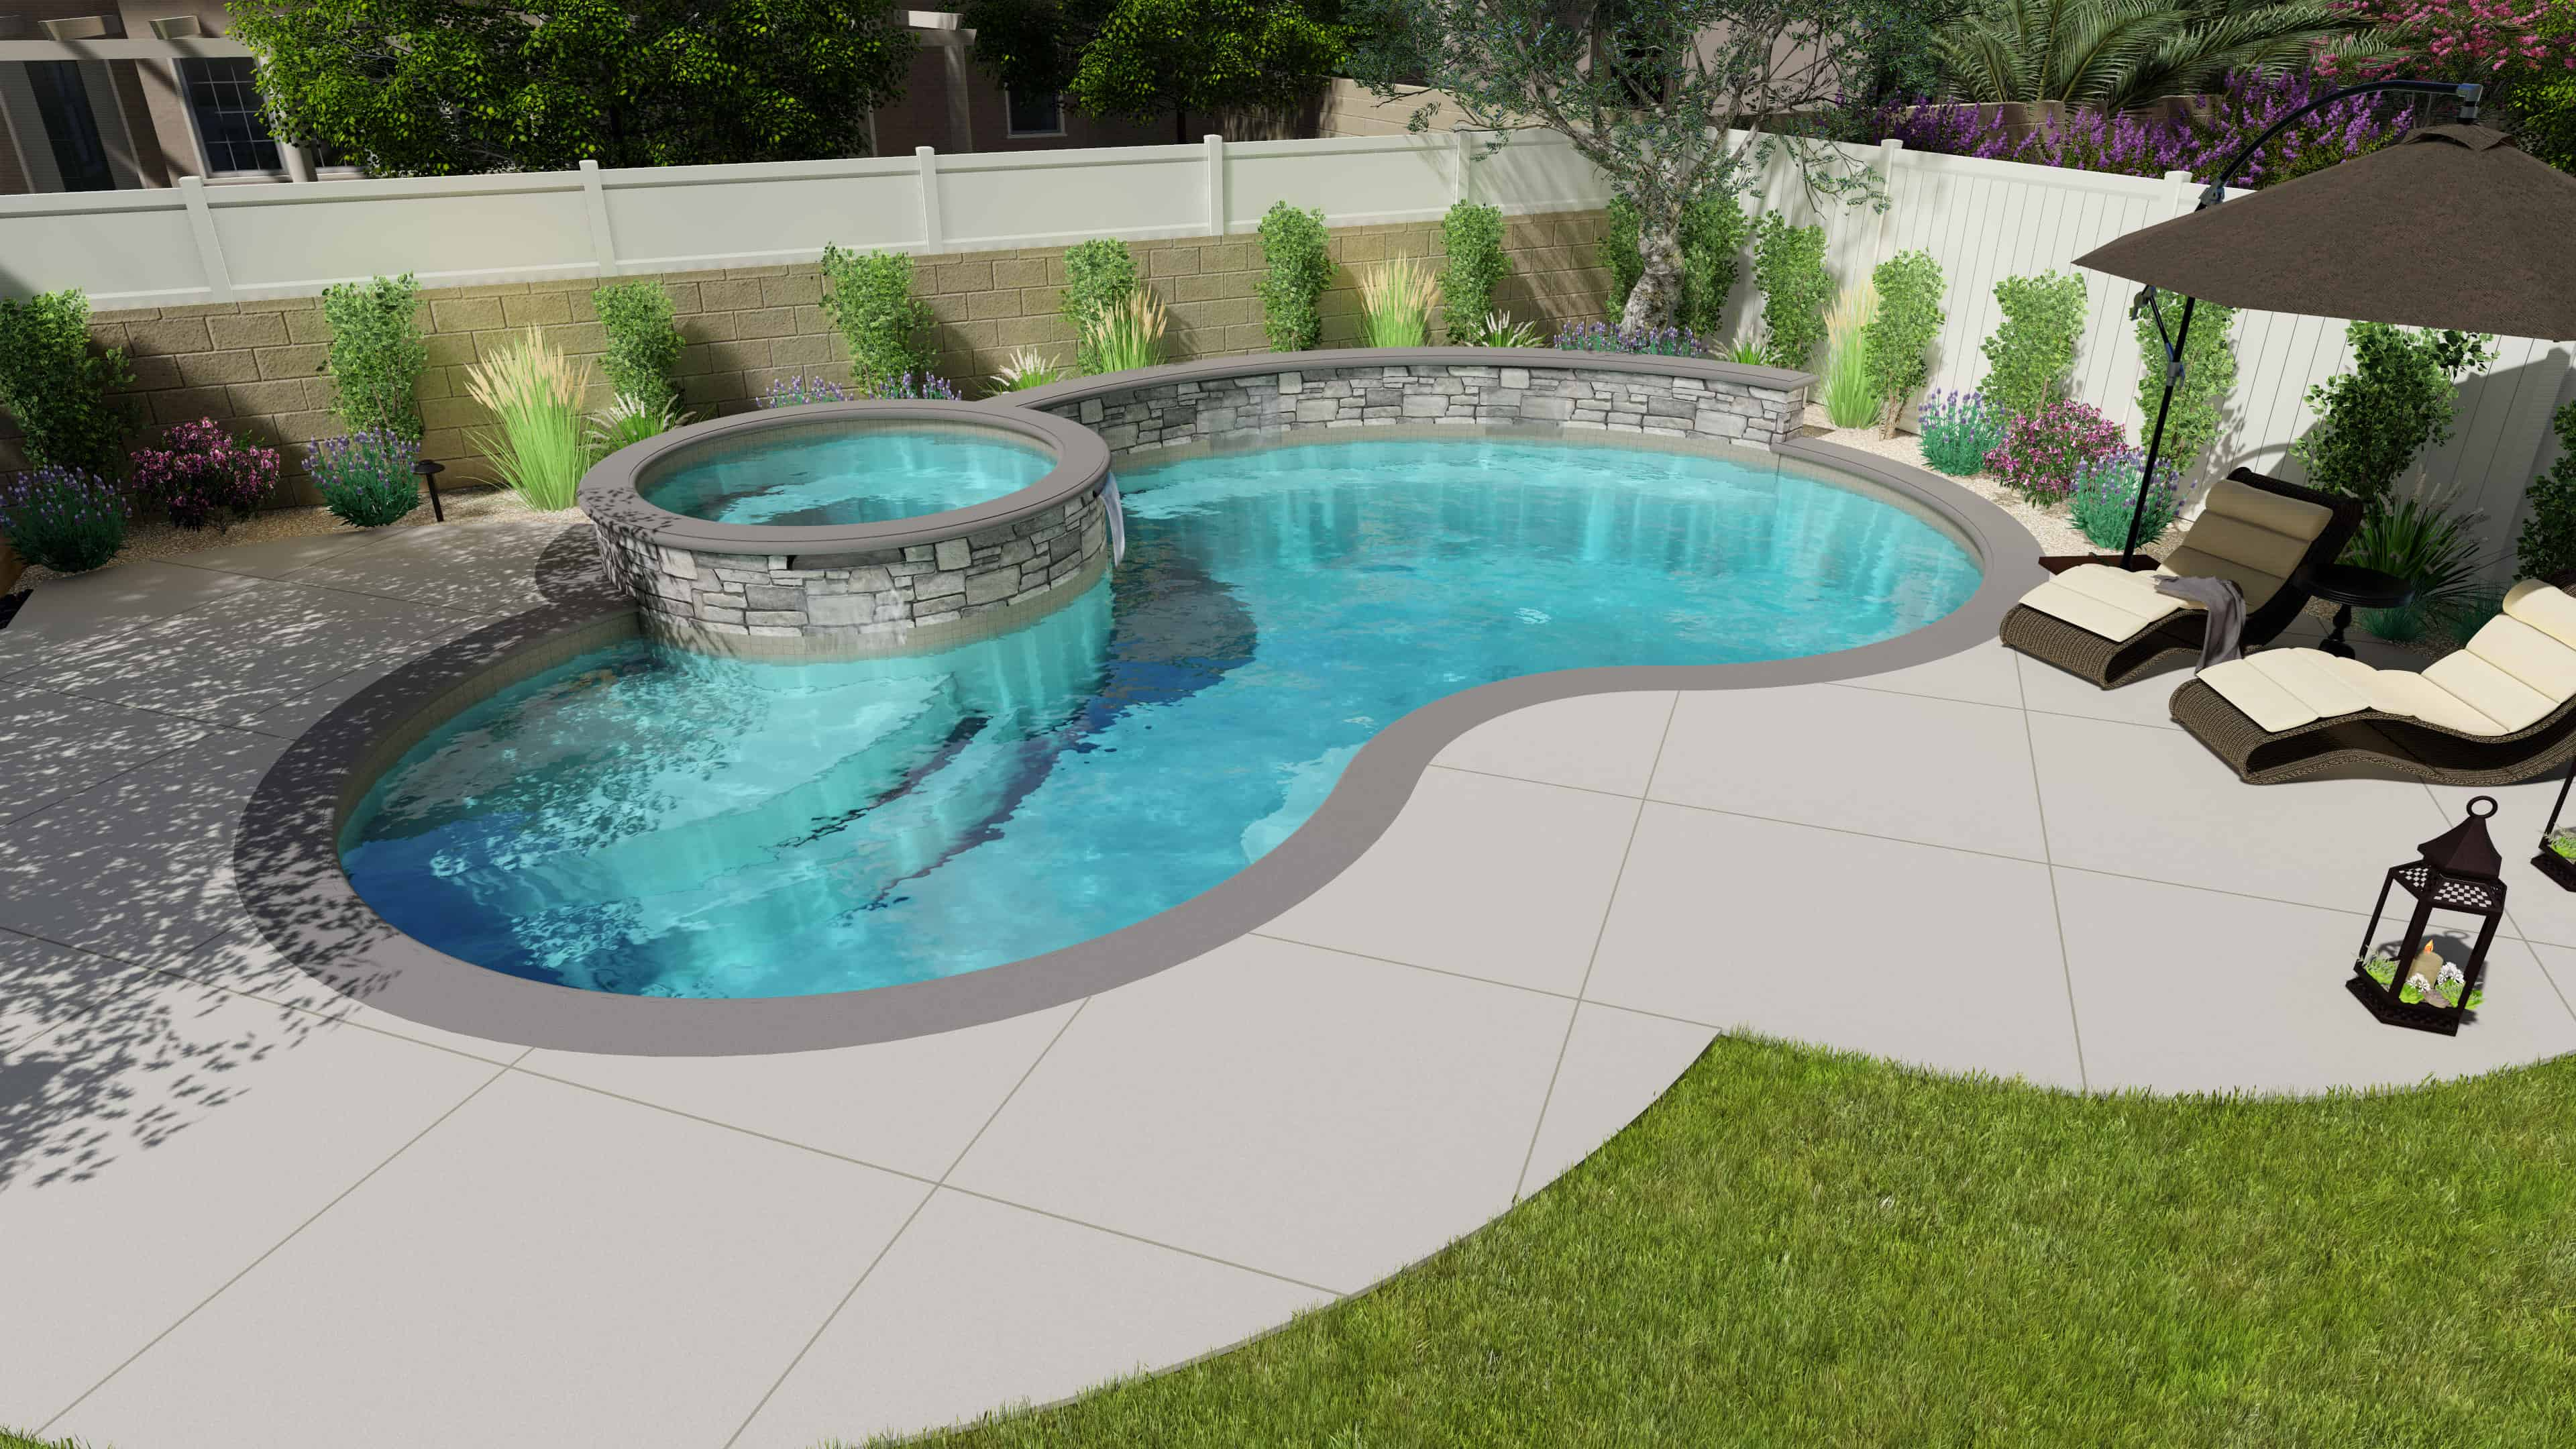 Pool Design Los Angeles swimming pool design style los angeles backyards ideas los angels with image of unique swimming pools Pool Design Los Angeles